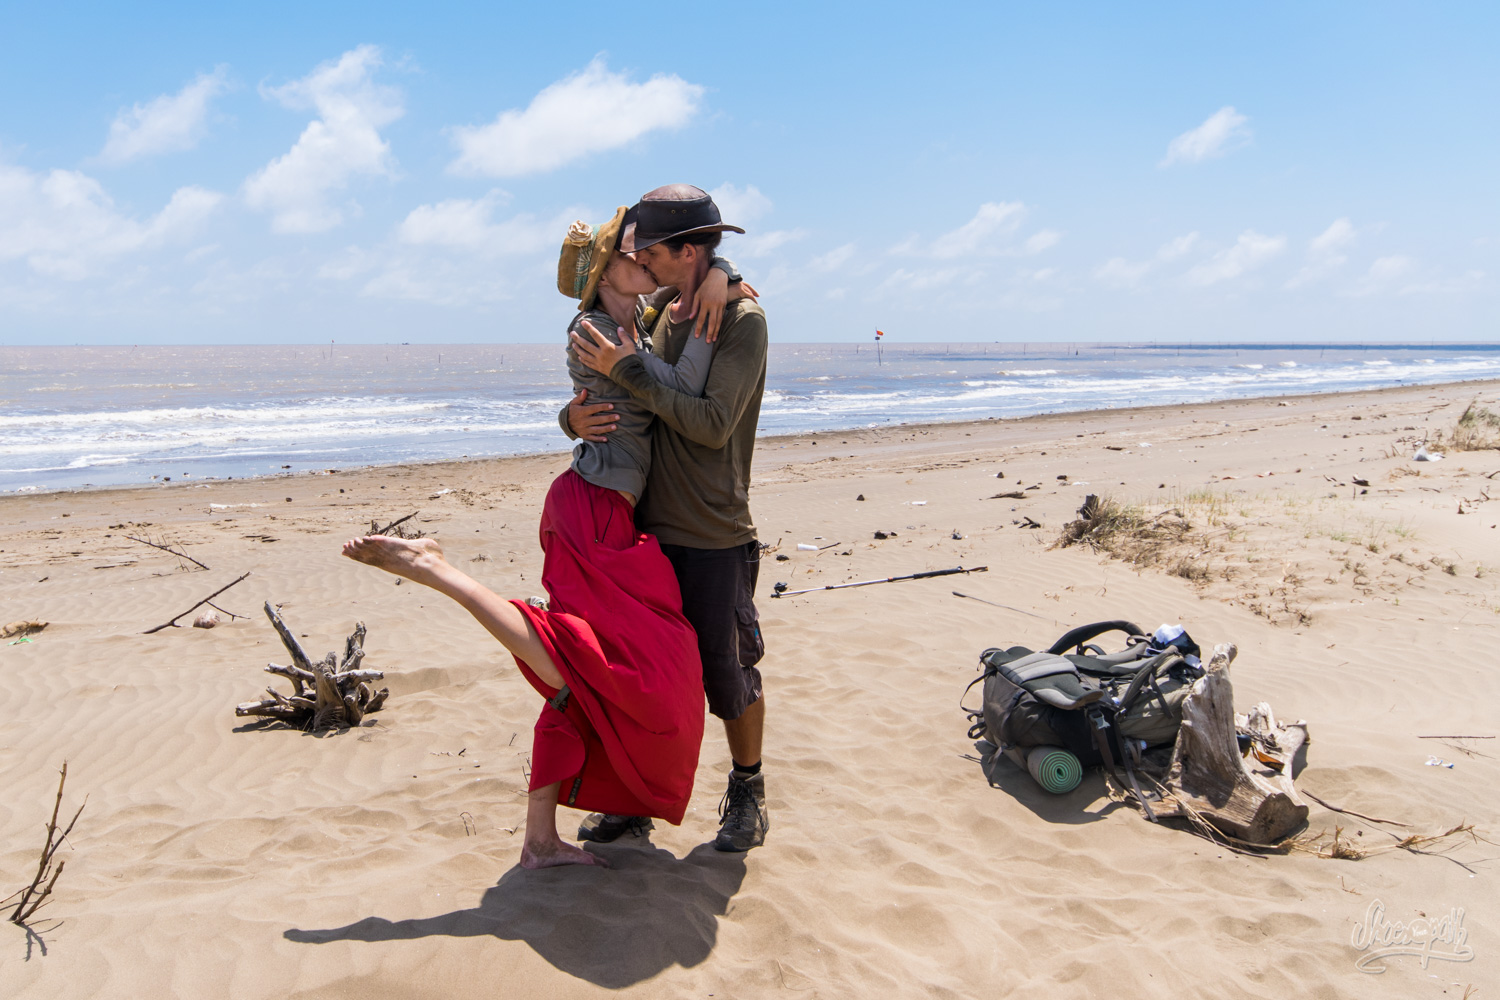 The final kiss, at the mouth of the Mekong, after 7 month walking on its banks